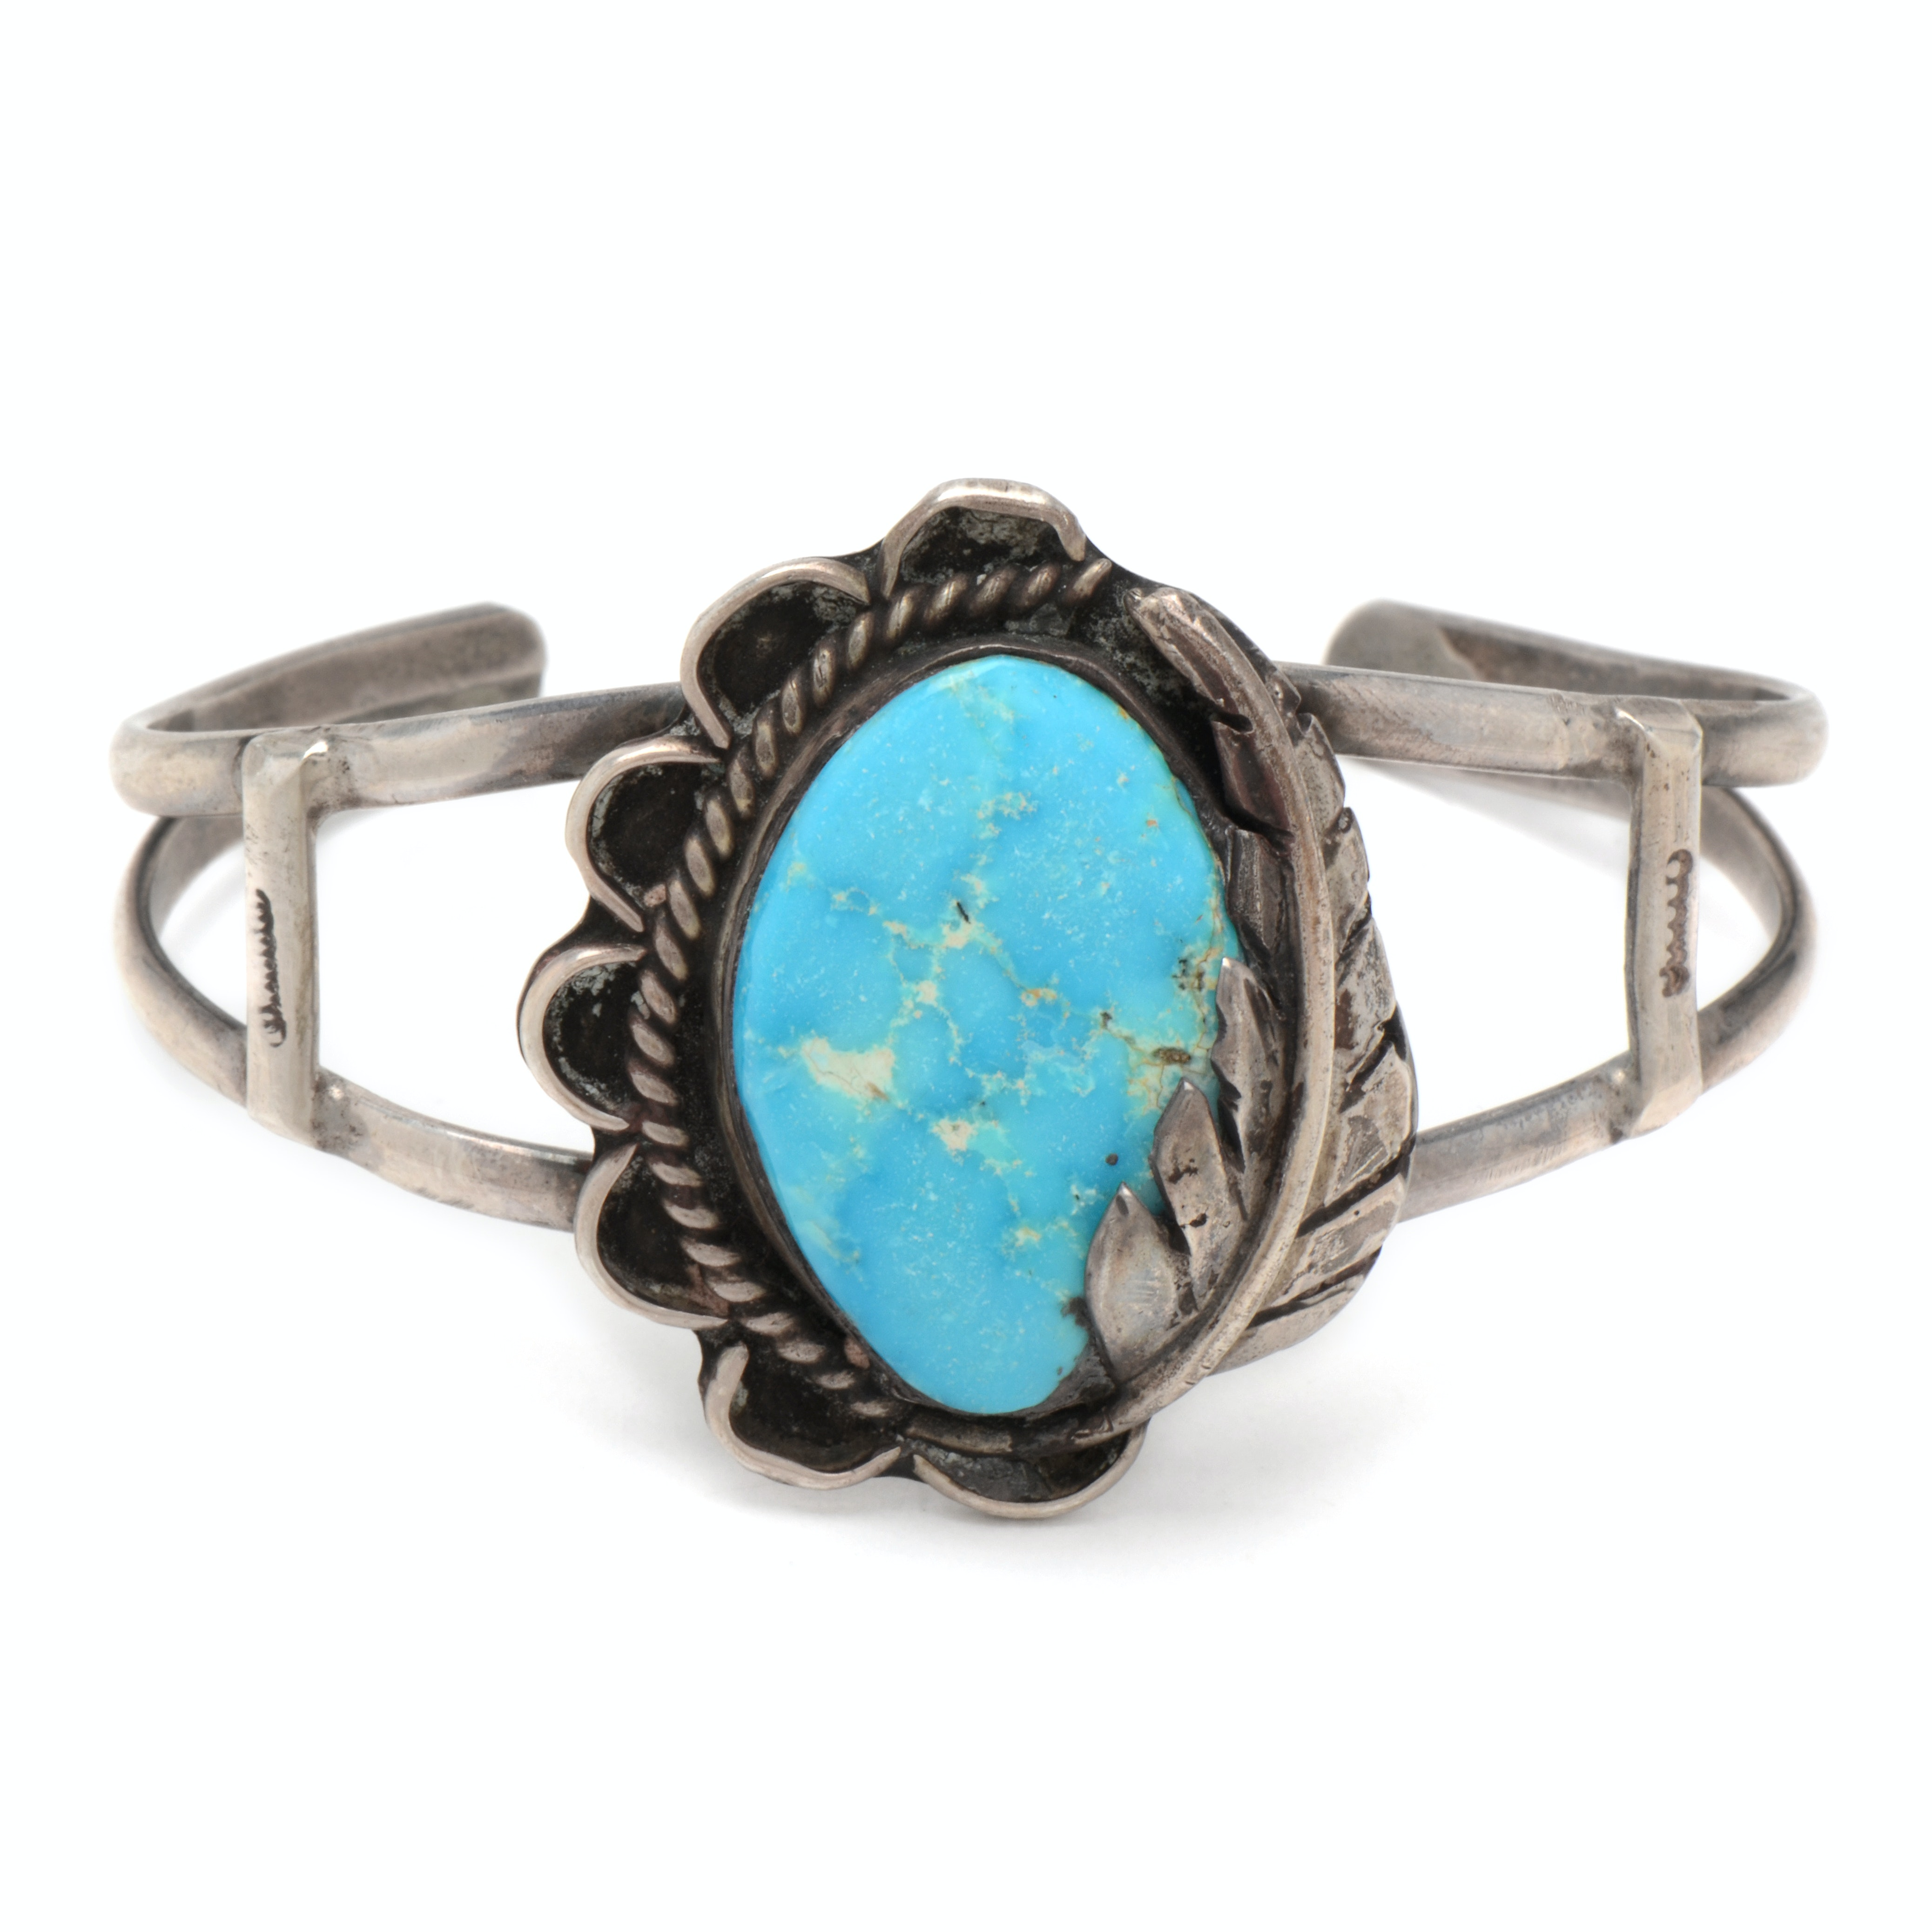 Vintage Southwestern Style Sterling Silver and Turquoise Cuff Bracelet